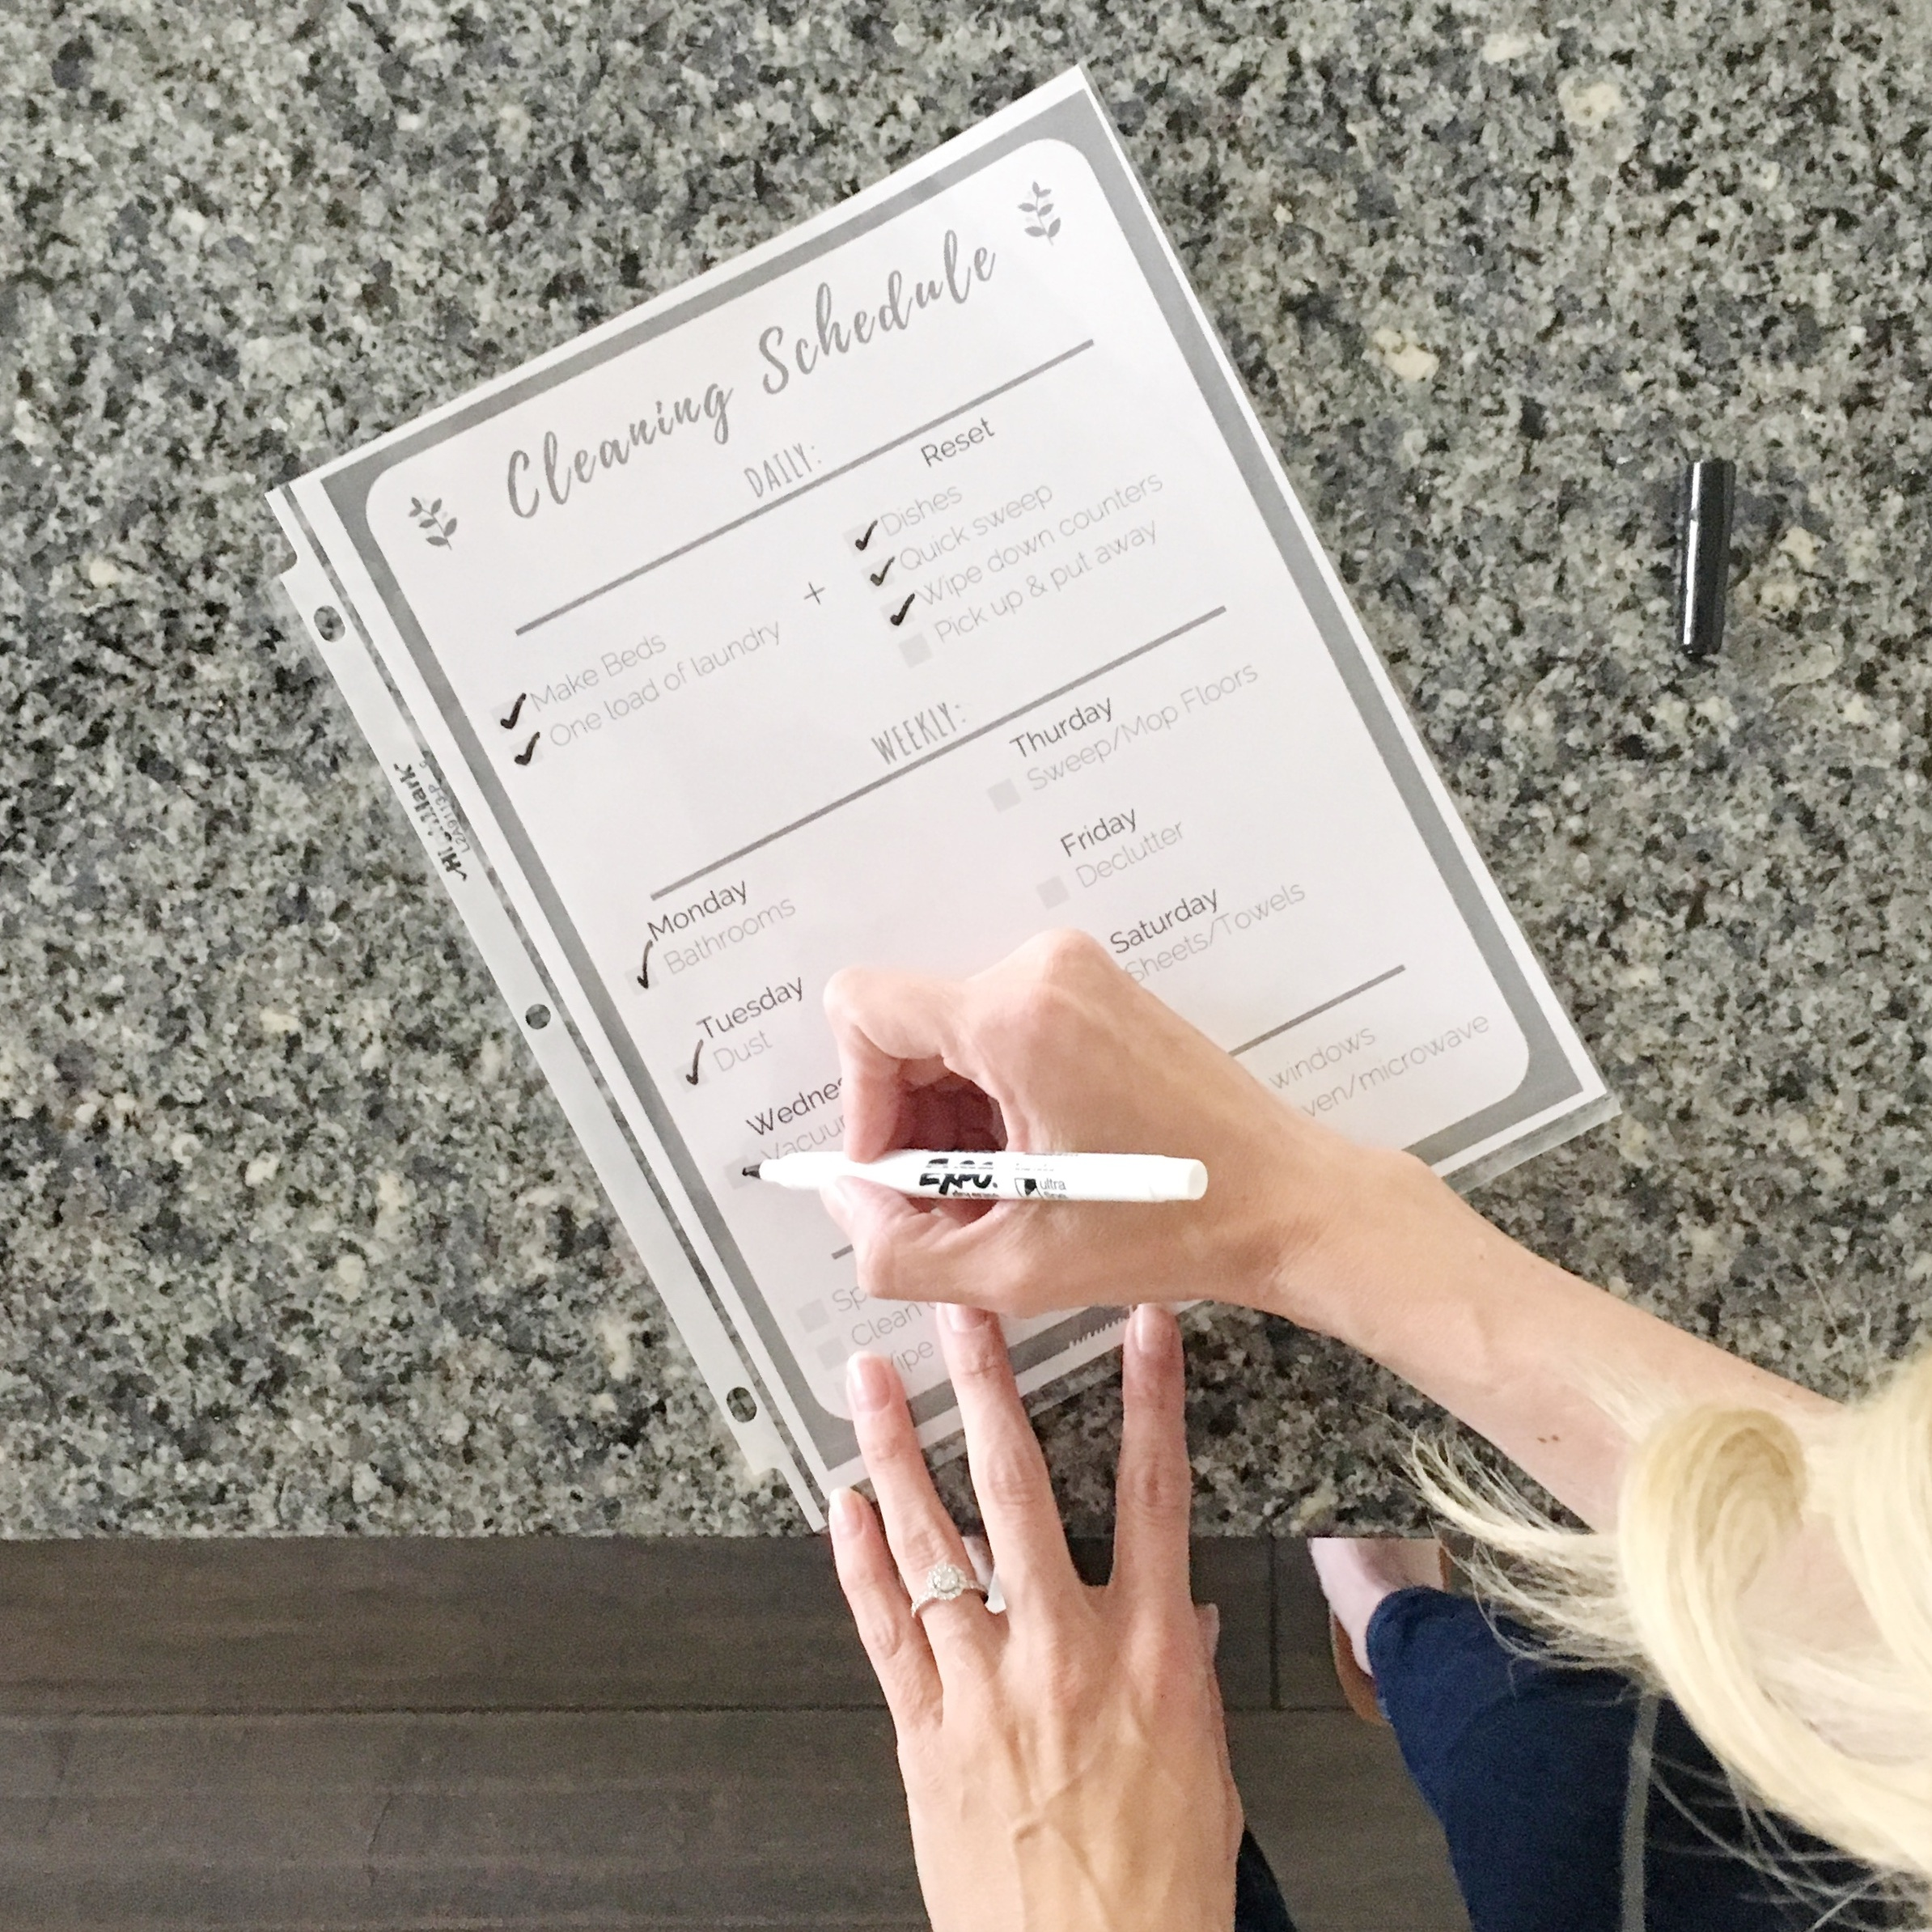 Simplified routines: household cleaning checklist